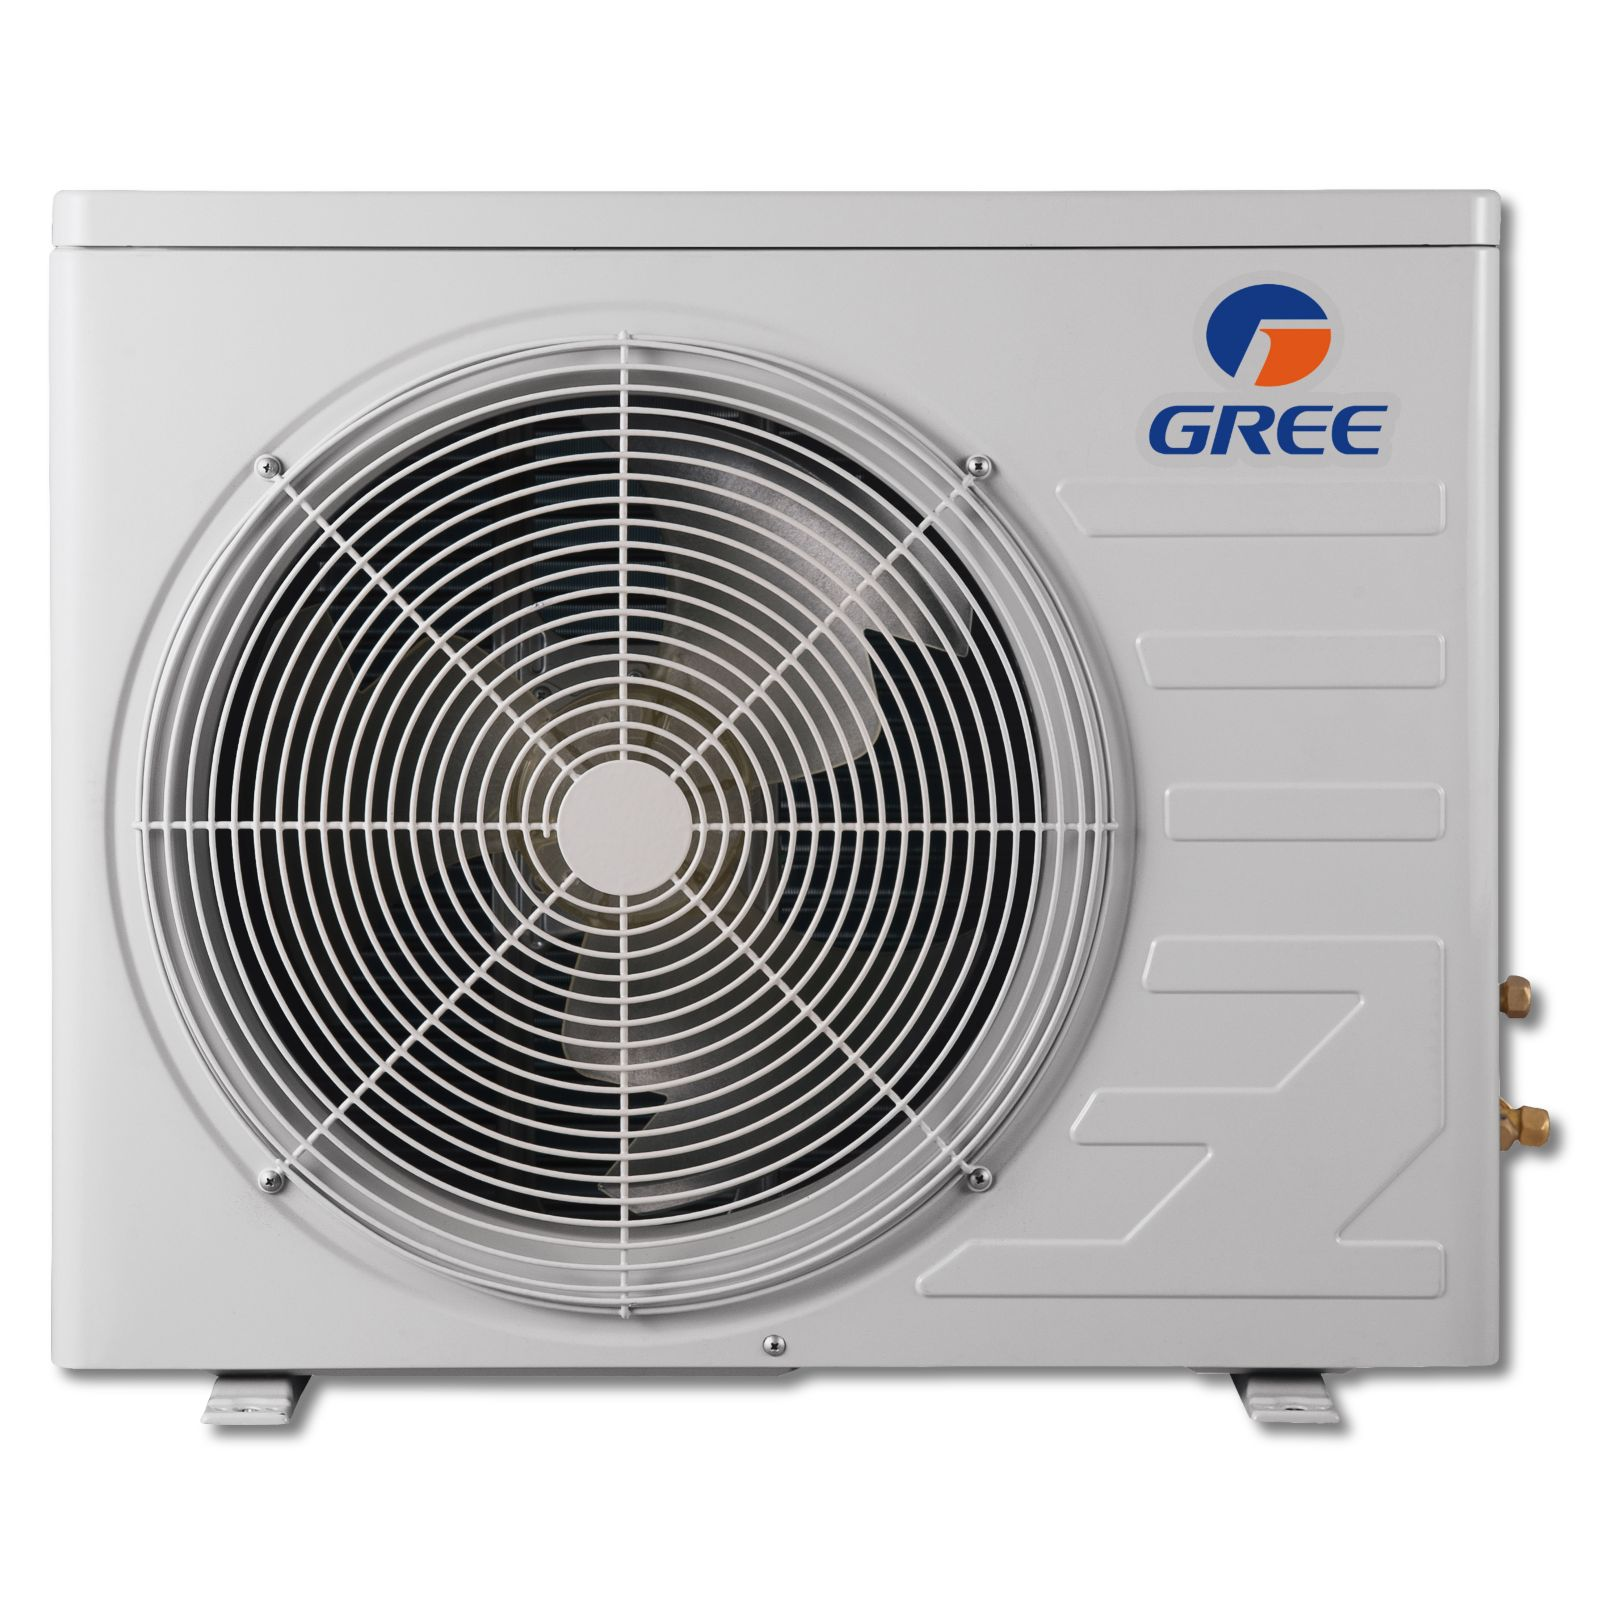 GREE RIO12HP230V1BO - RIO Ductless Outdoor Unit 208-230/60 High Efficiency DC Inverter Technology 16 SEER, 10.3 EER, 8.5 HSPF